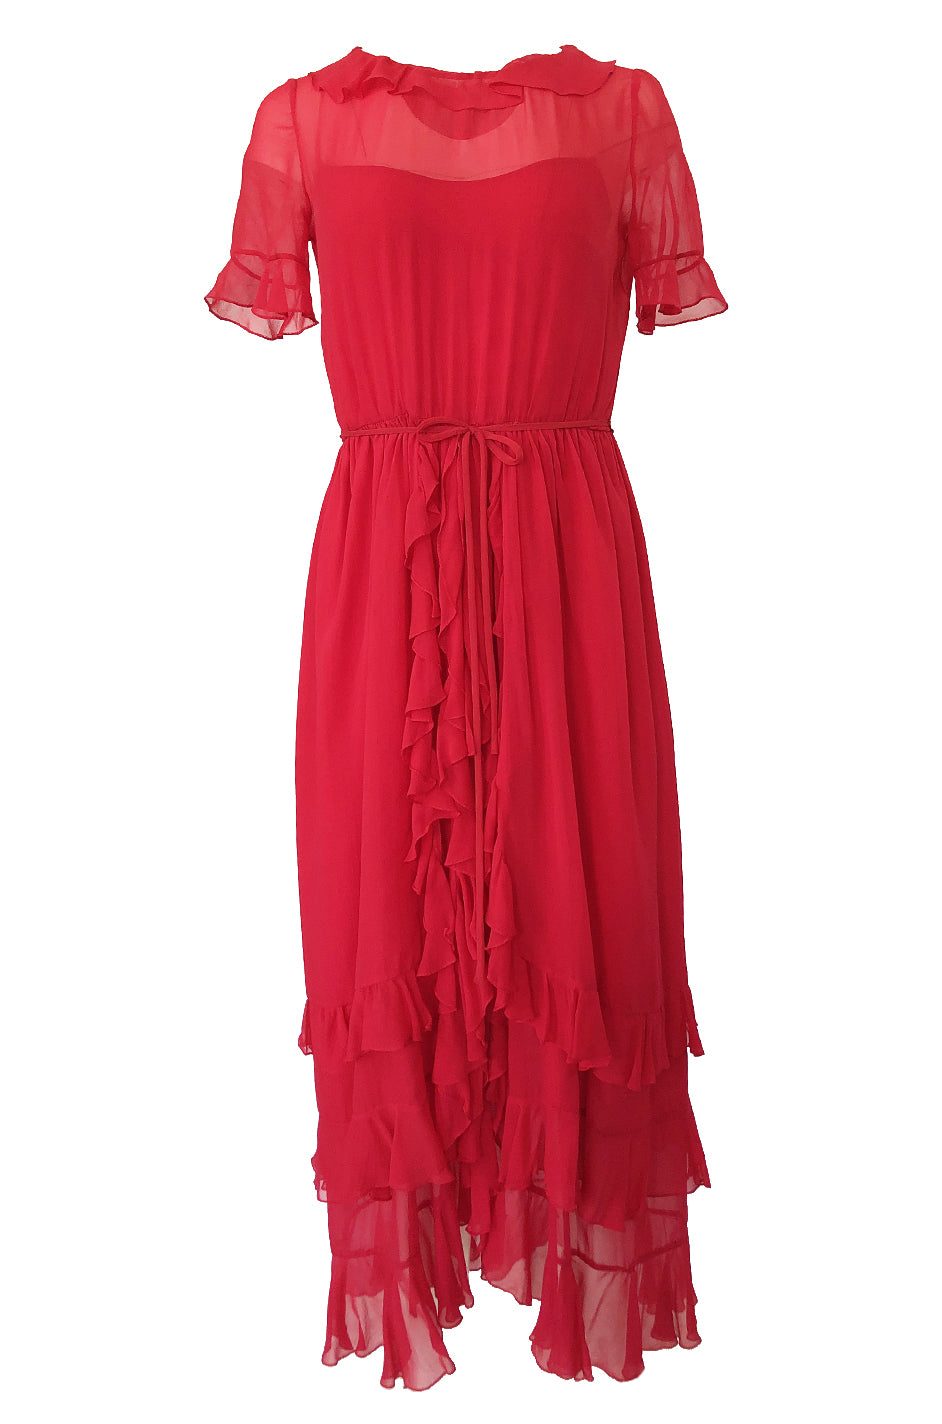 61c4c982d2 1970s Bill Blass Feather Light Red Ruffled Tiered Skirt Silk Chiffon Dress